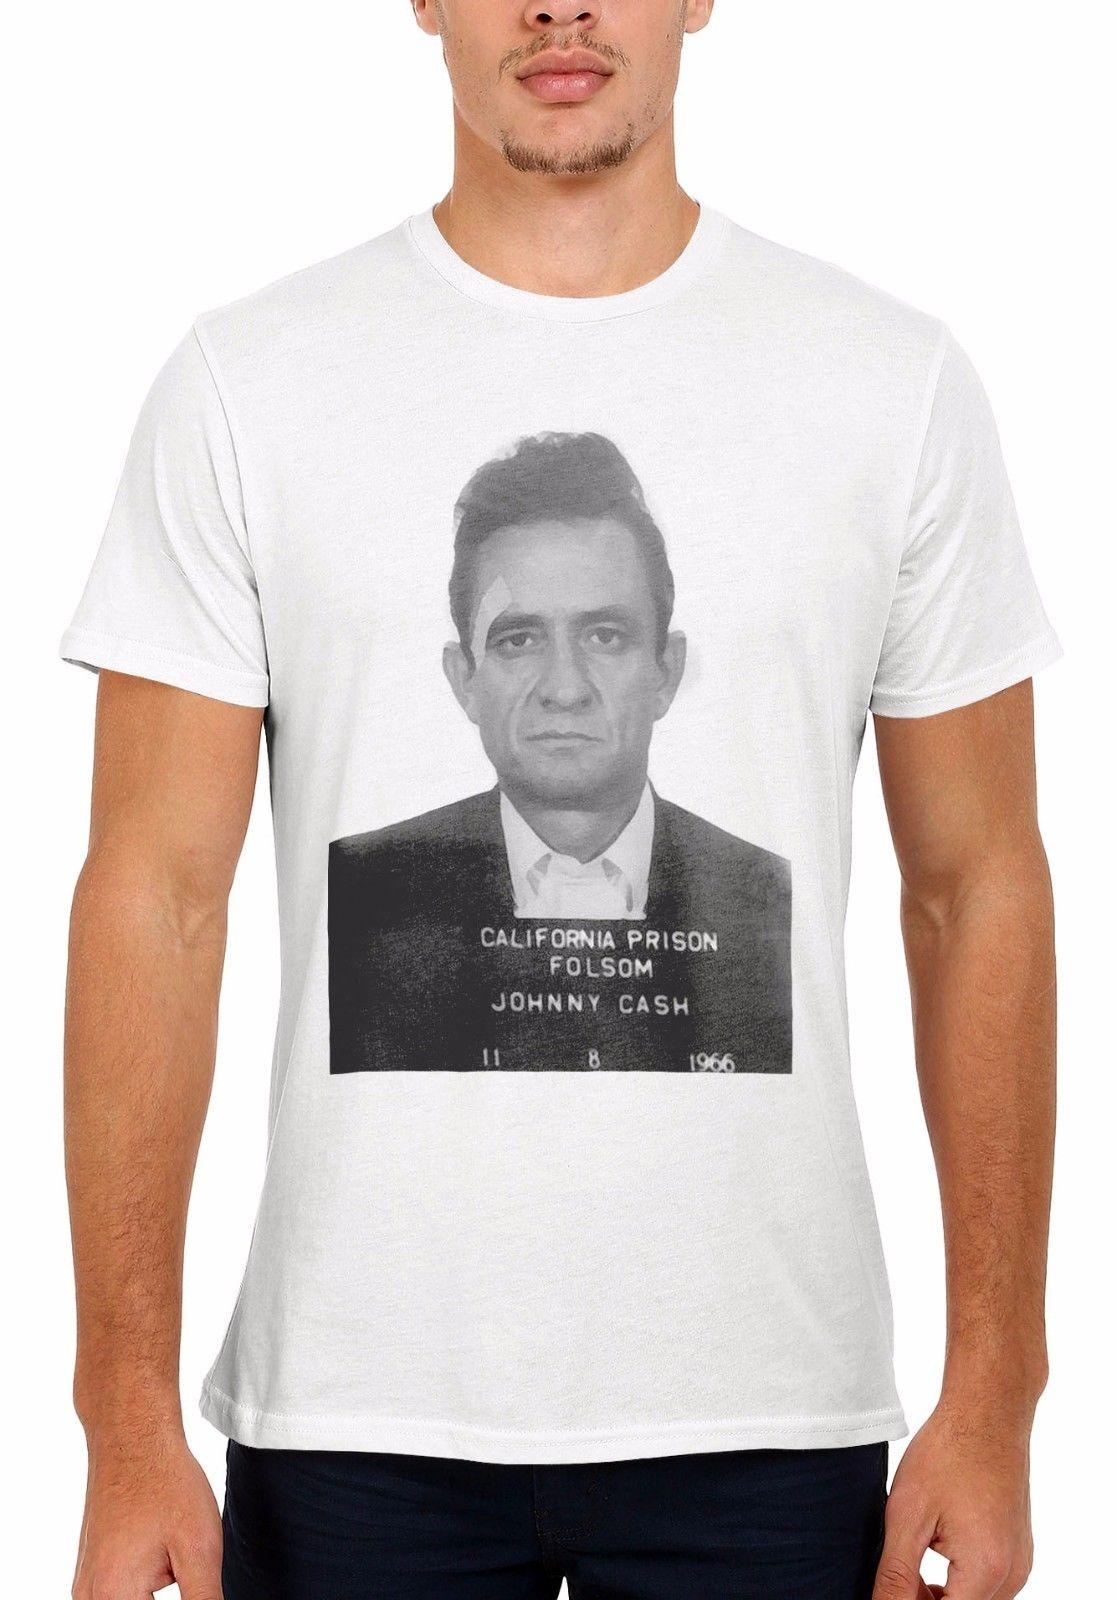 9a341381 Johnny Cash Mugshot Men Women Vest Tank Top Unisex T Shirt 2039 Short  Sleeve Round Neck T Shirt Promotion Design Your Own T Shirts Womens Shirt  From ...